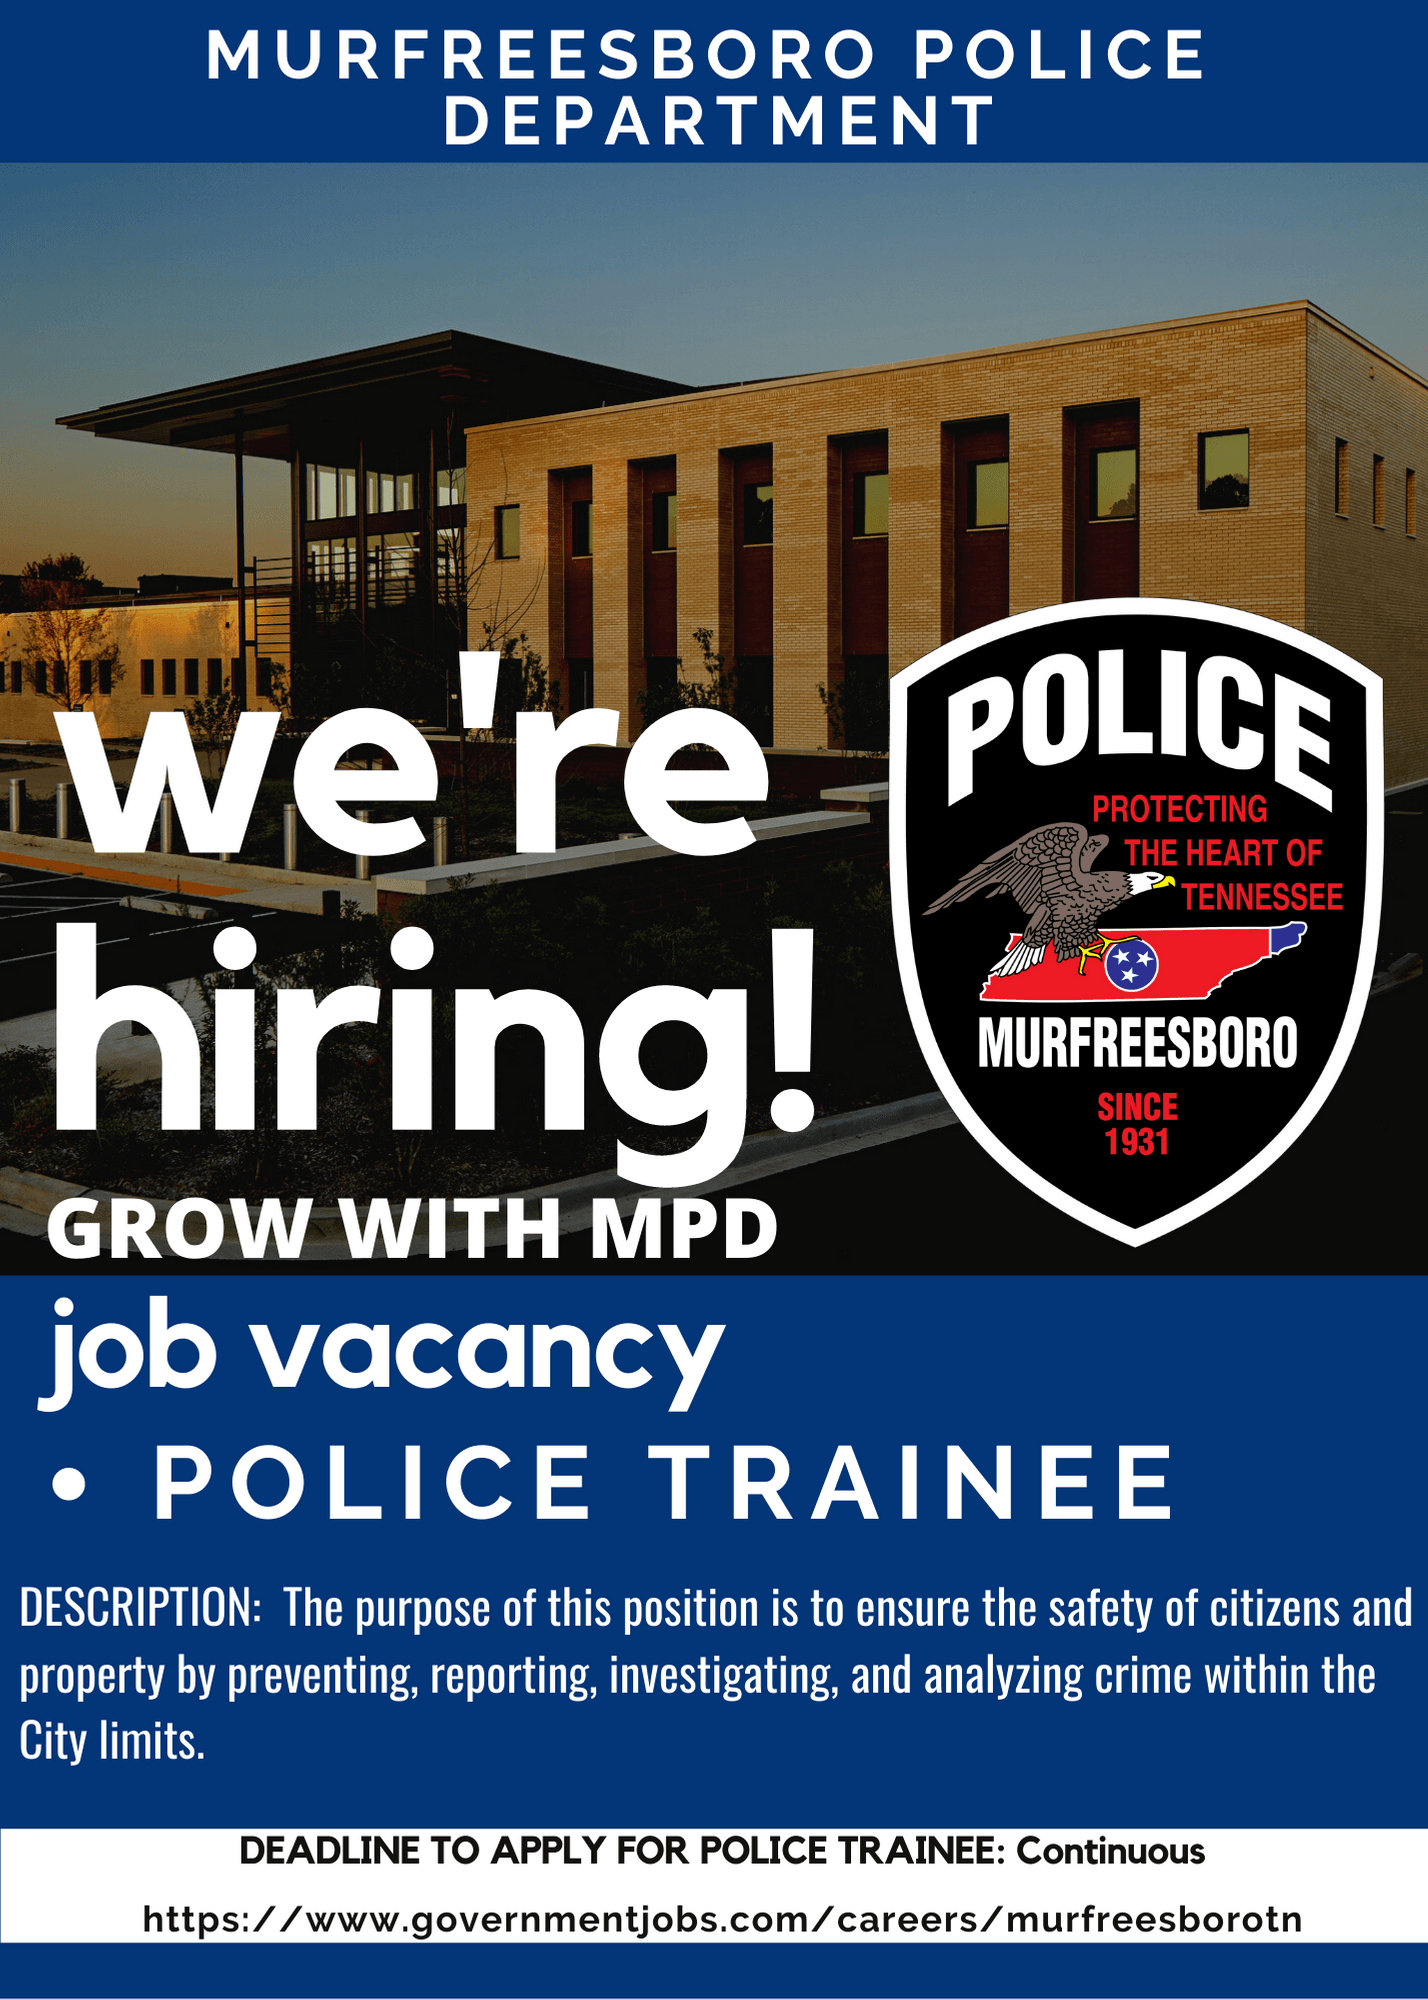 MPD Job Vacancy Officer